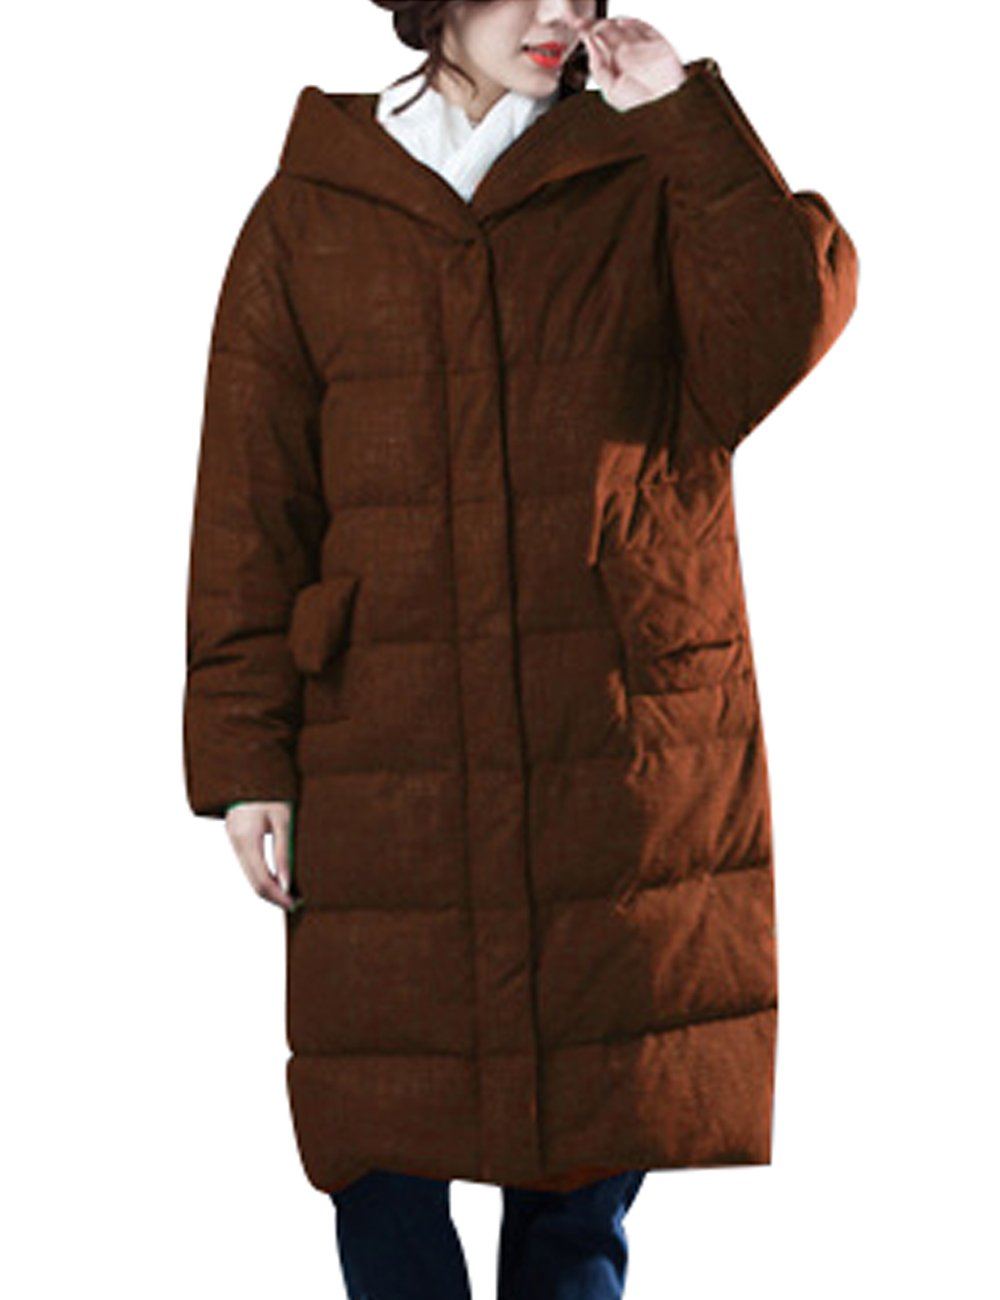 Zoulee Women's Winter Thick Warm Down Parka With Hooded Front Two Pockets Style 1 Caramel Colour XL